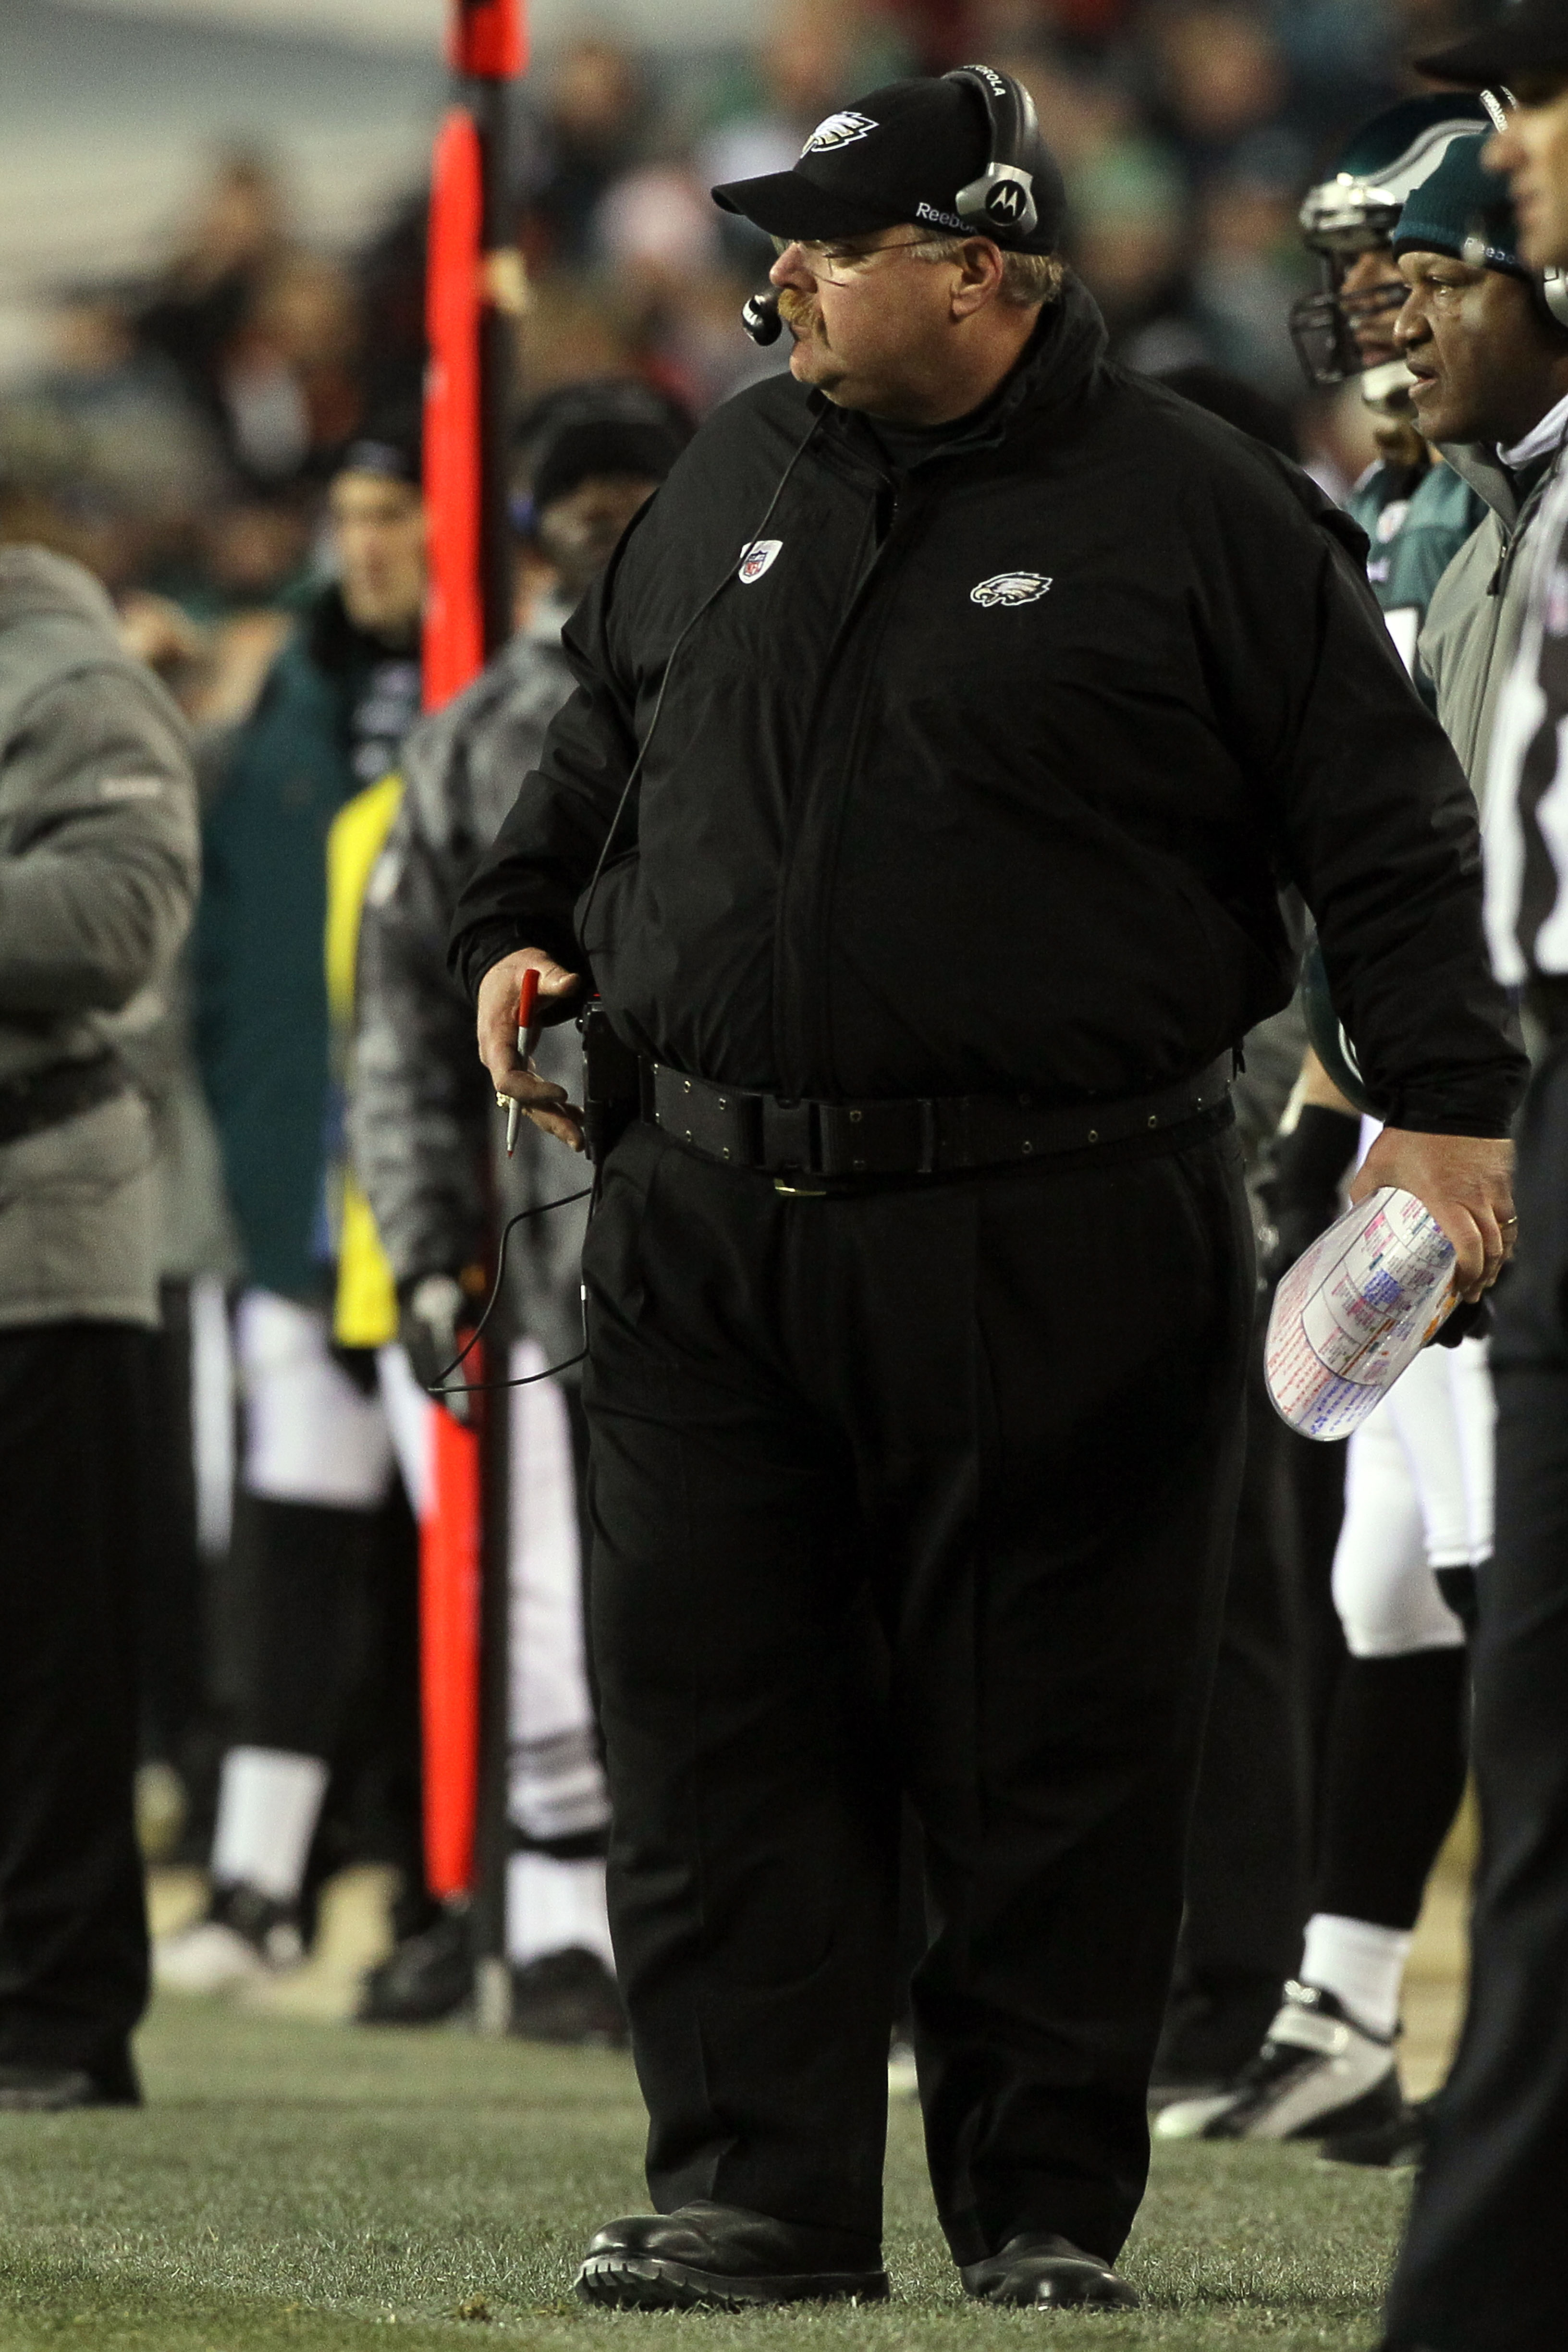 PHILADELPHIA, PA - DECEMBER 26:  Head Coach Andy Reid of the Philadelphia Eagles watches play against the Minnesota Vikings at Lincoln Financial Field on December 26, 2010 in Philadelphia, Pennsylvania.  (Photo by Jim McIsaac/Getty Images)